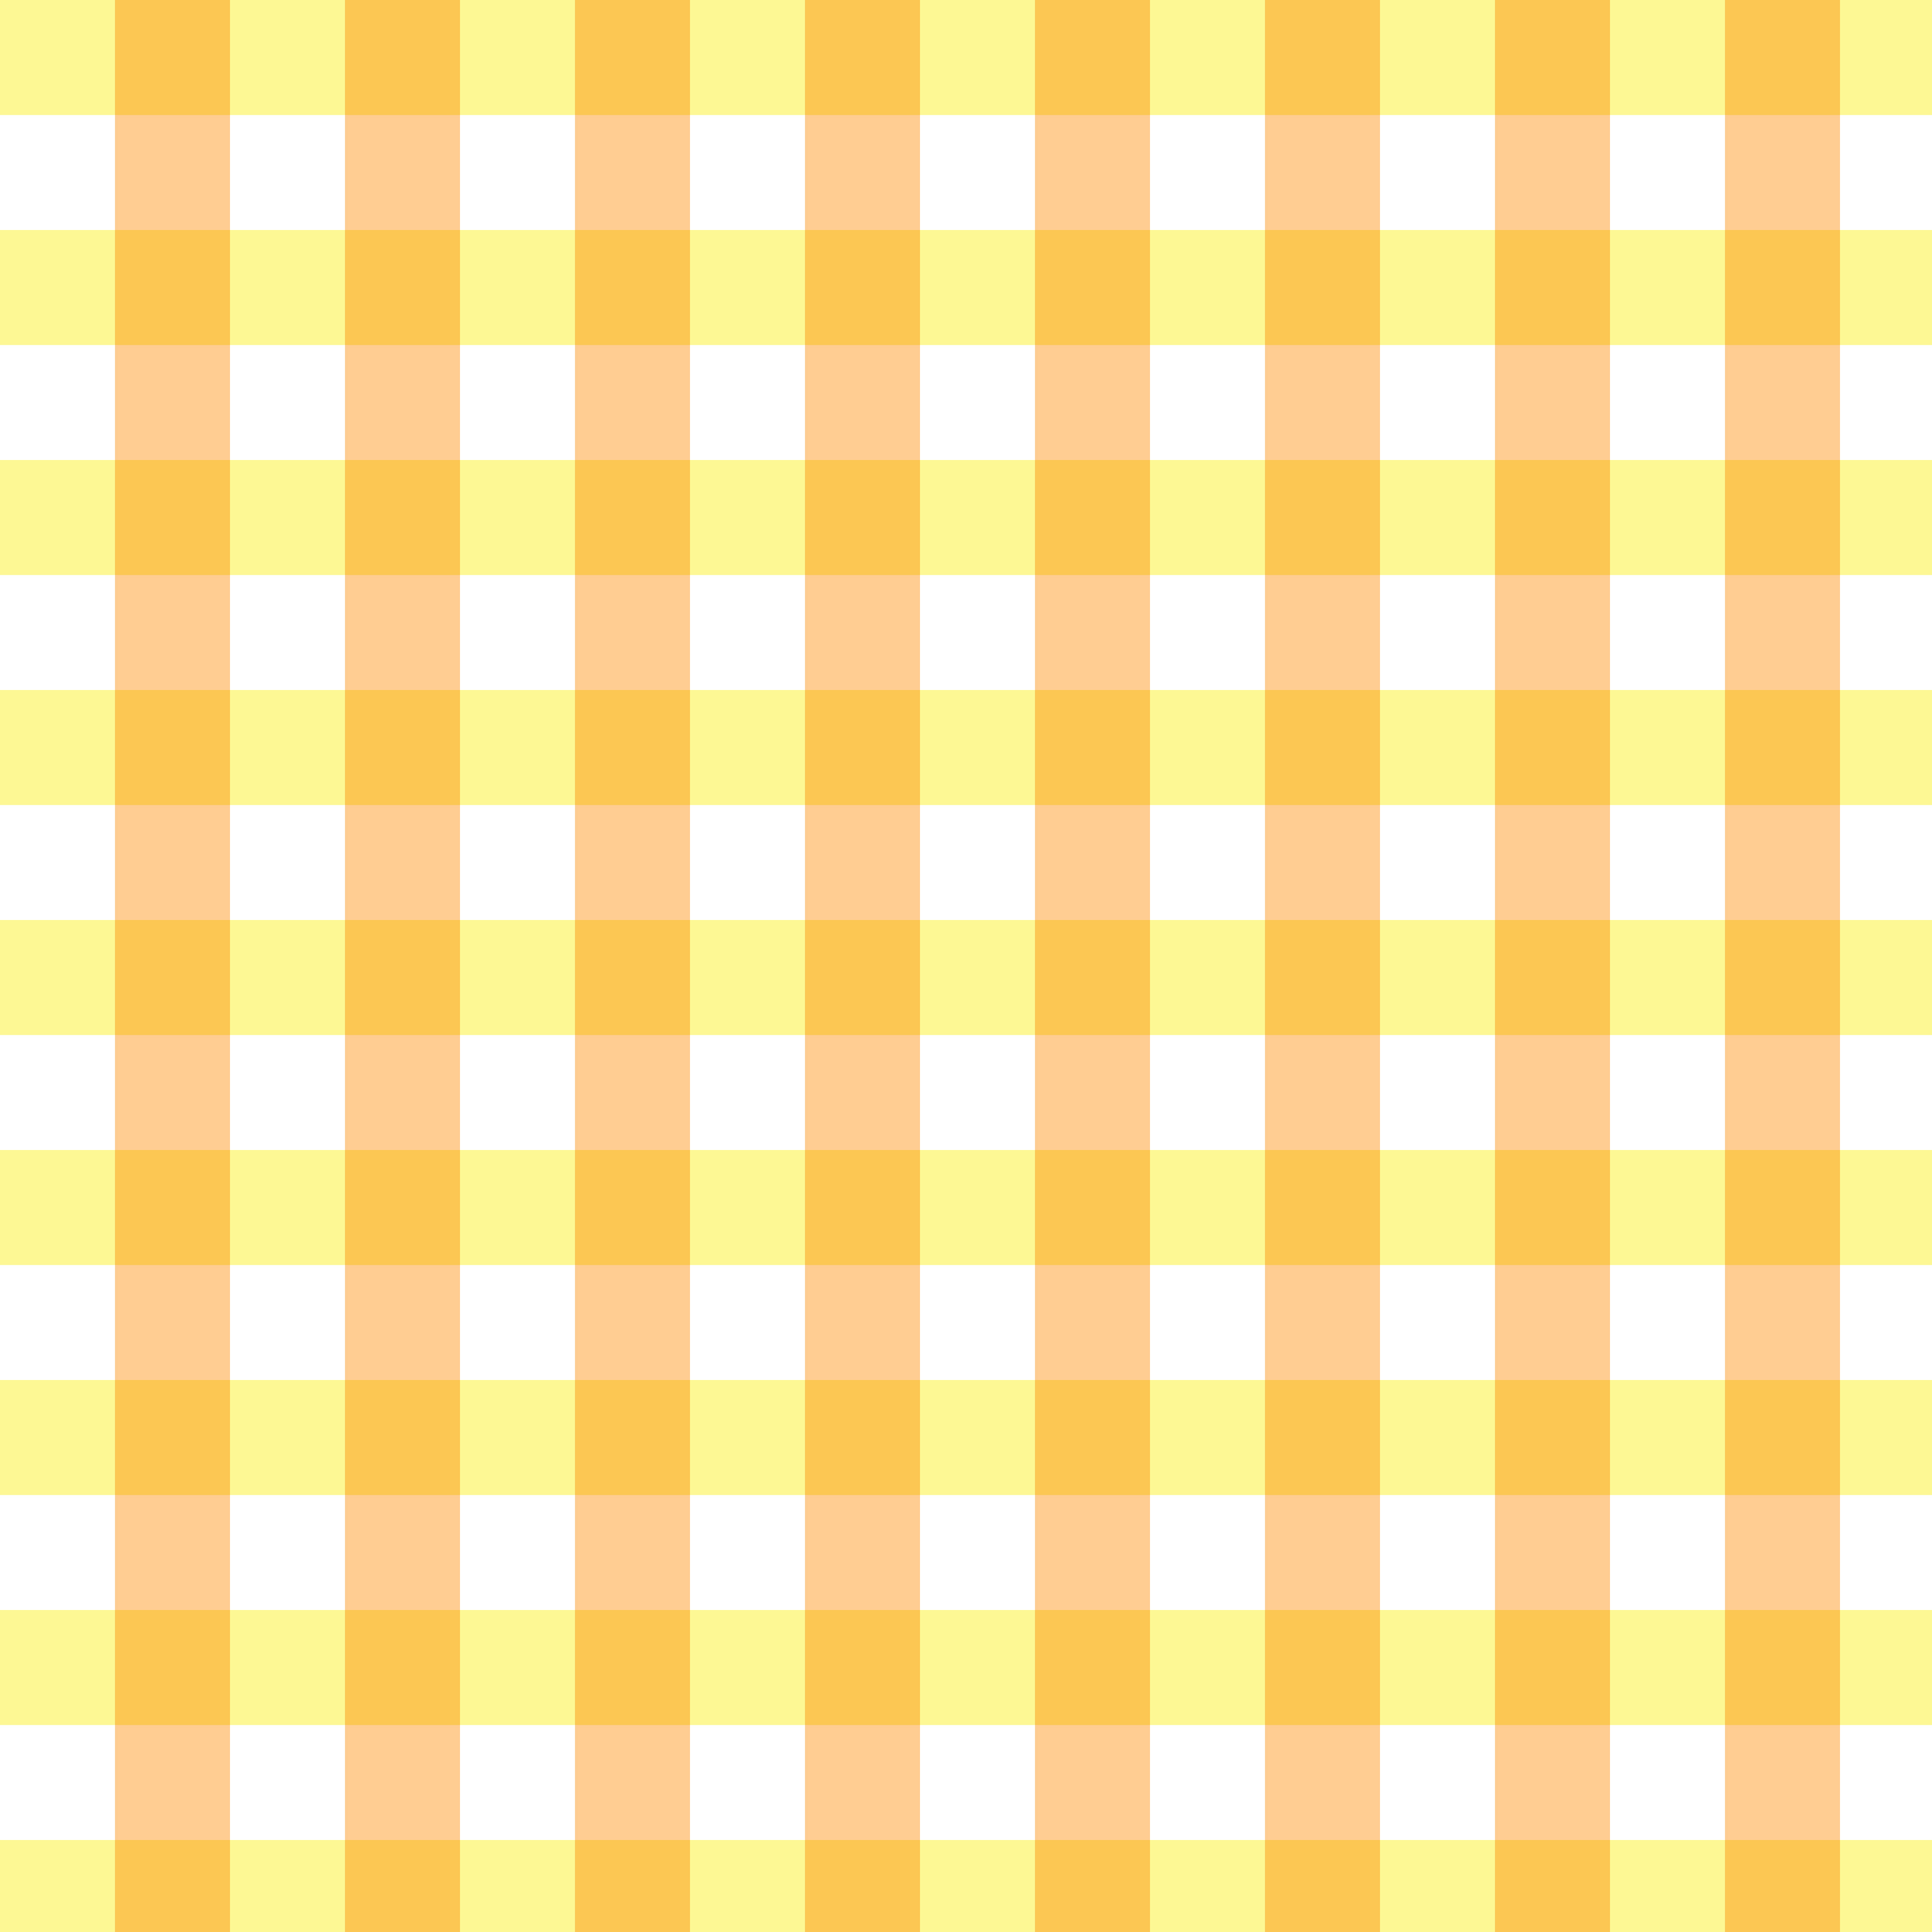 Scrapbooking Paper Yellow Checks Pattern Free Image